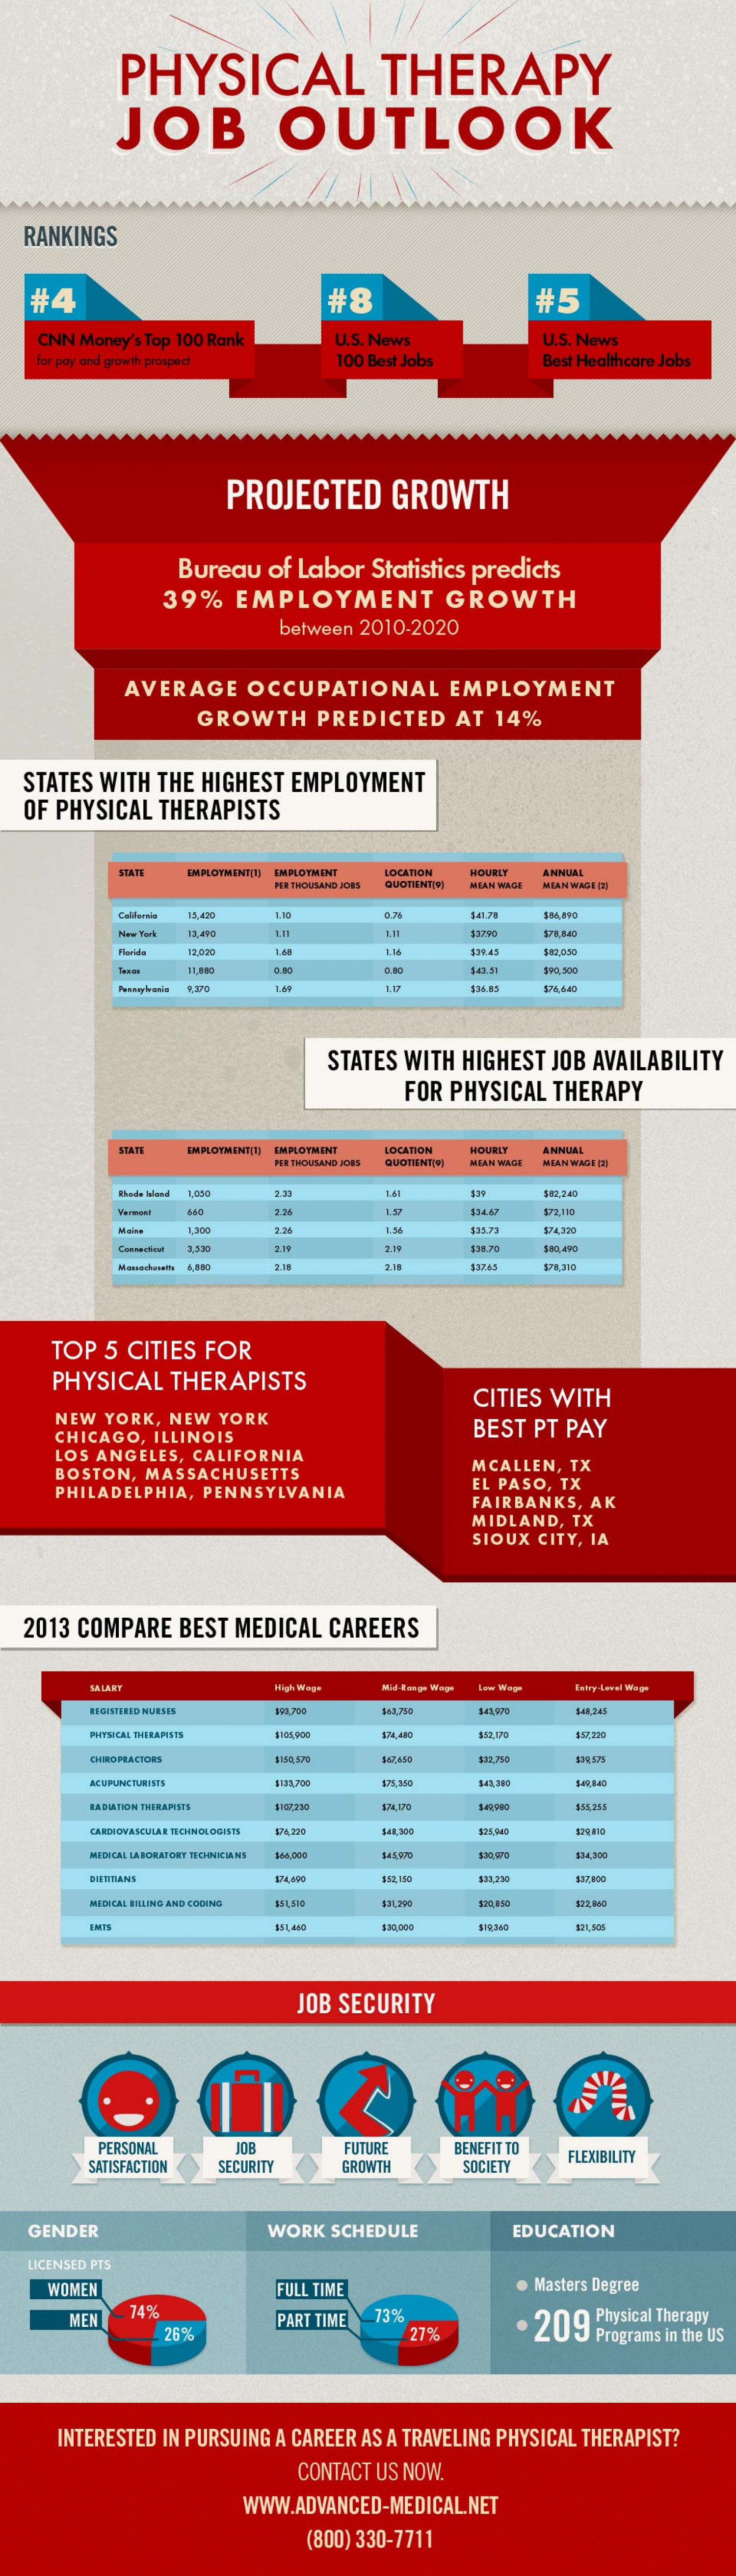 Physical Therapy Job Outlook [infographic] Infographic